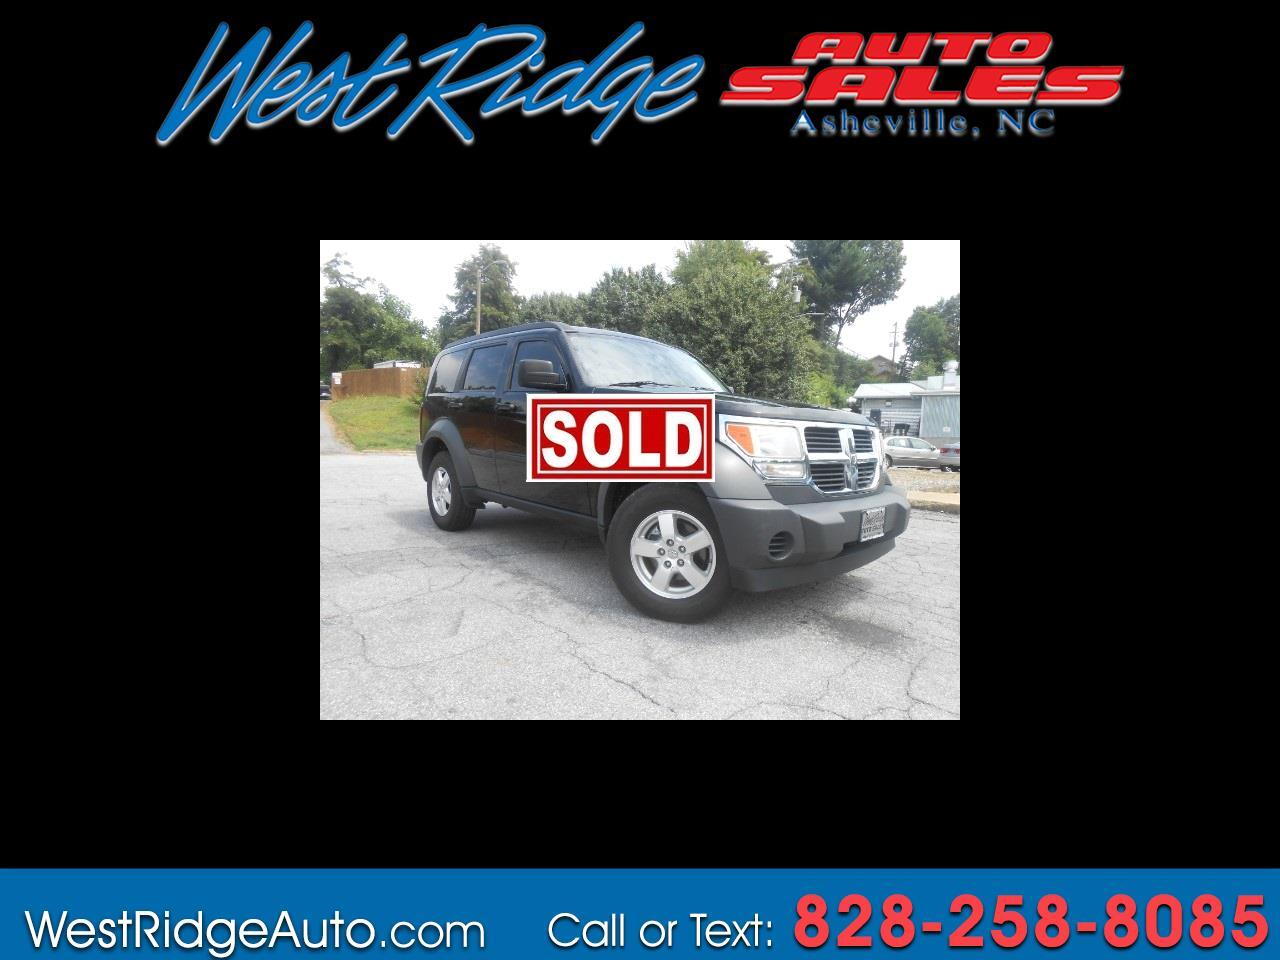 buy here pay here 2007 dodge nitro sxt 4wd for sale in asheville nc 28806 west ridge auto sales. Black Bedroom Furniture Sets. Home Design Ideas